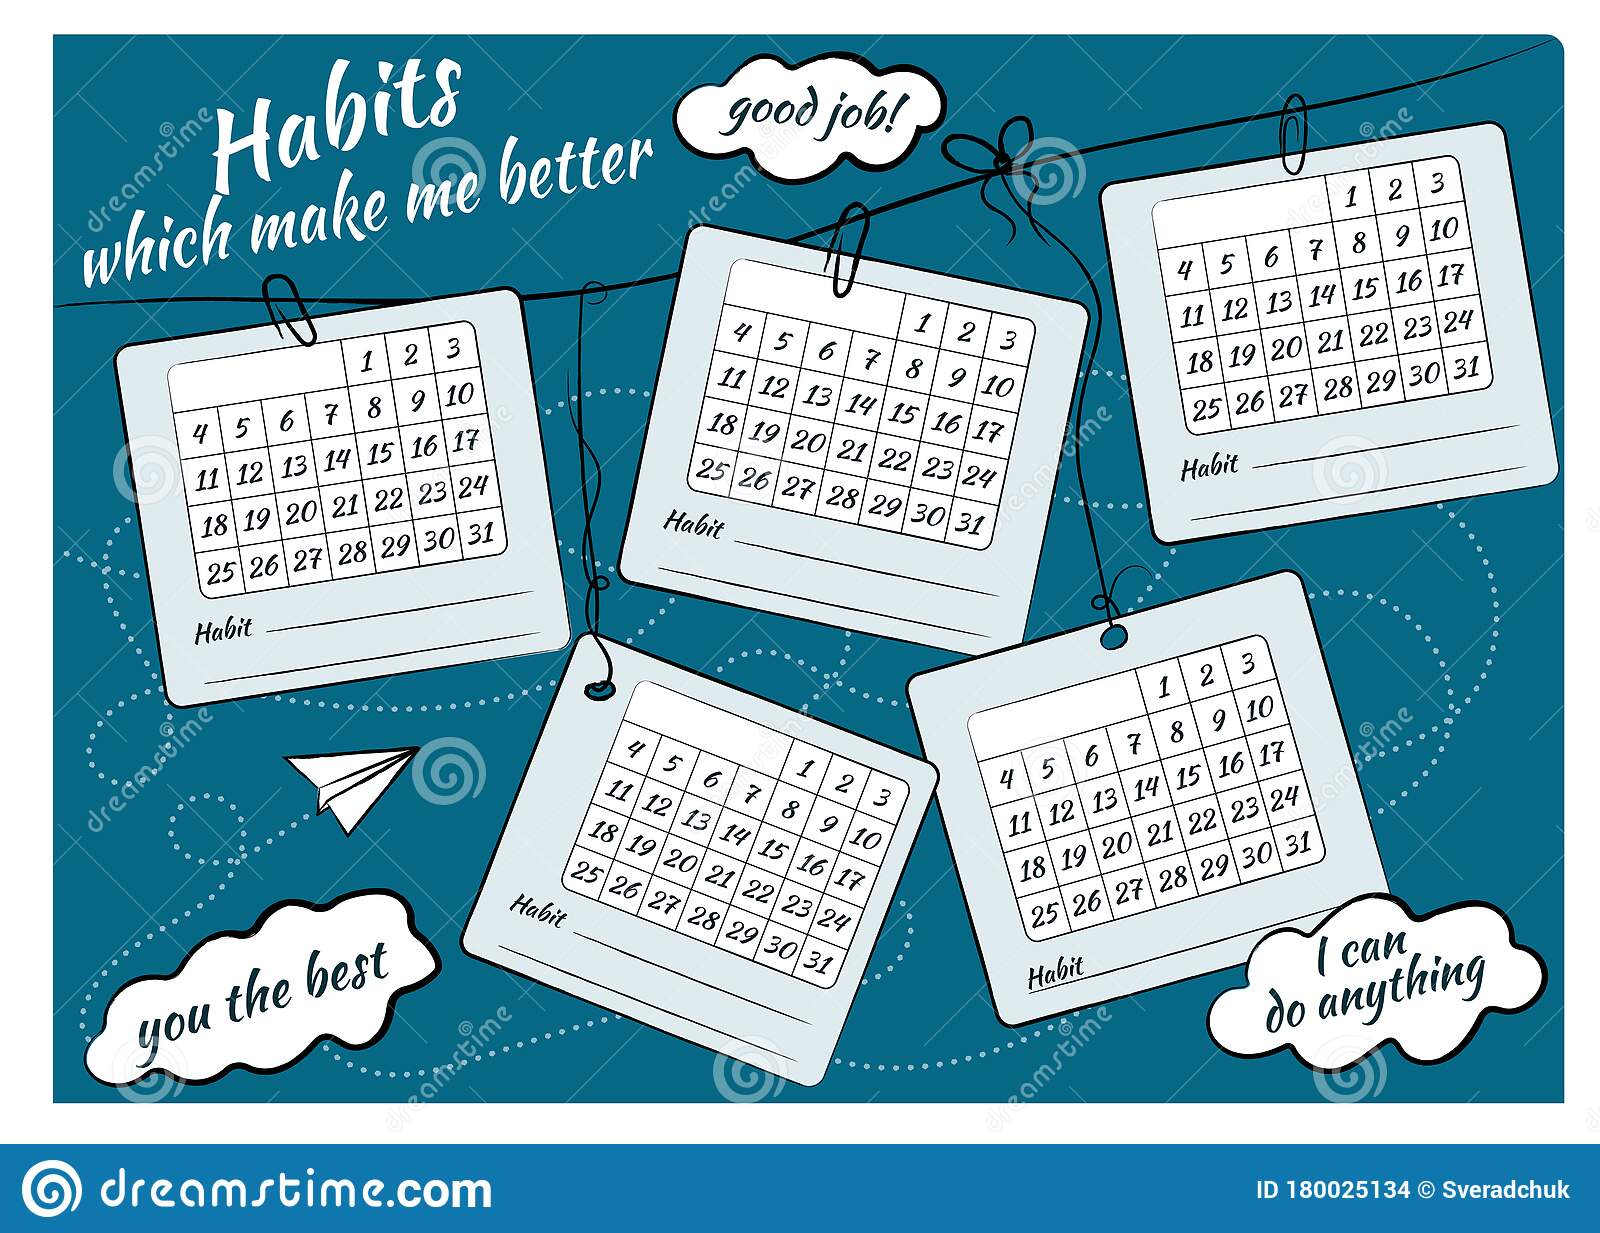 Habit Control Sheet And Inscriptions Habits That Will